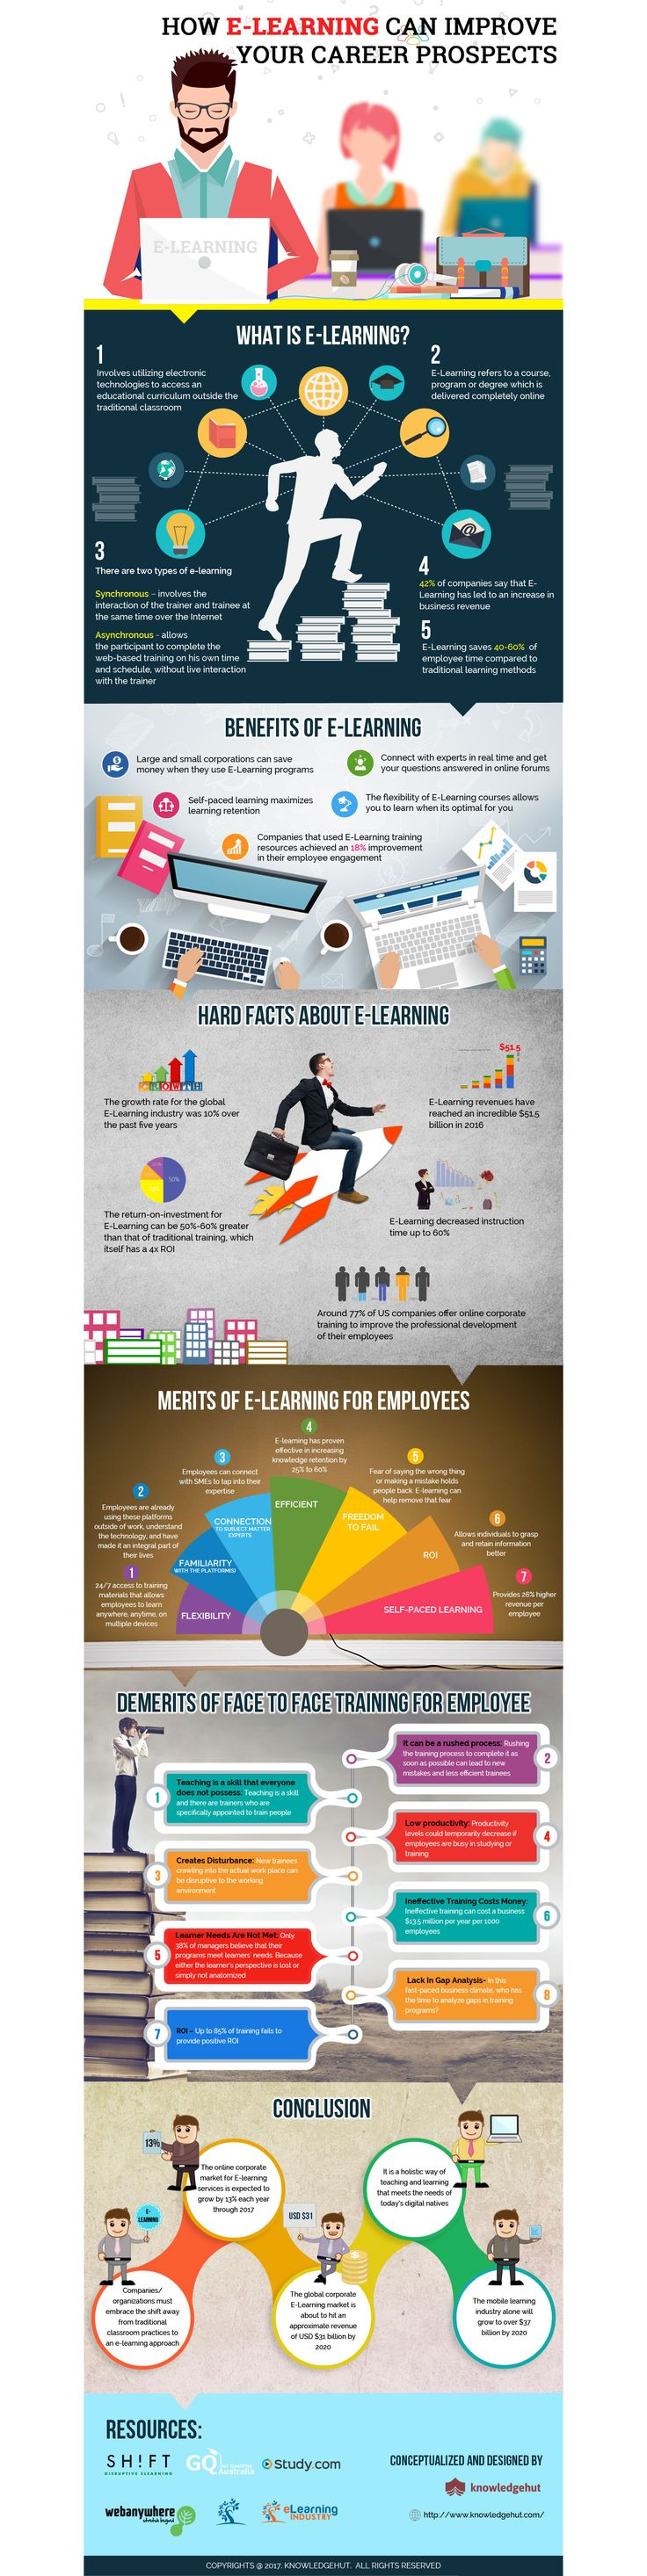 17 best ideas about prospect theory loss aversion how e learning can help improve your career prospects infographic